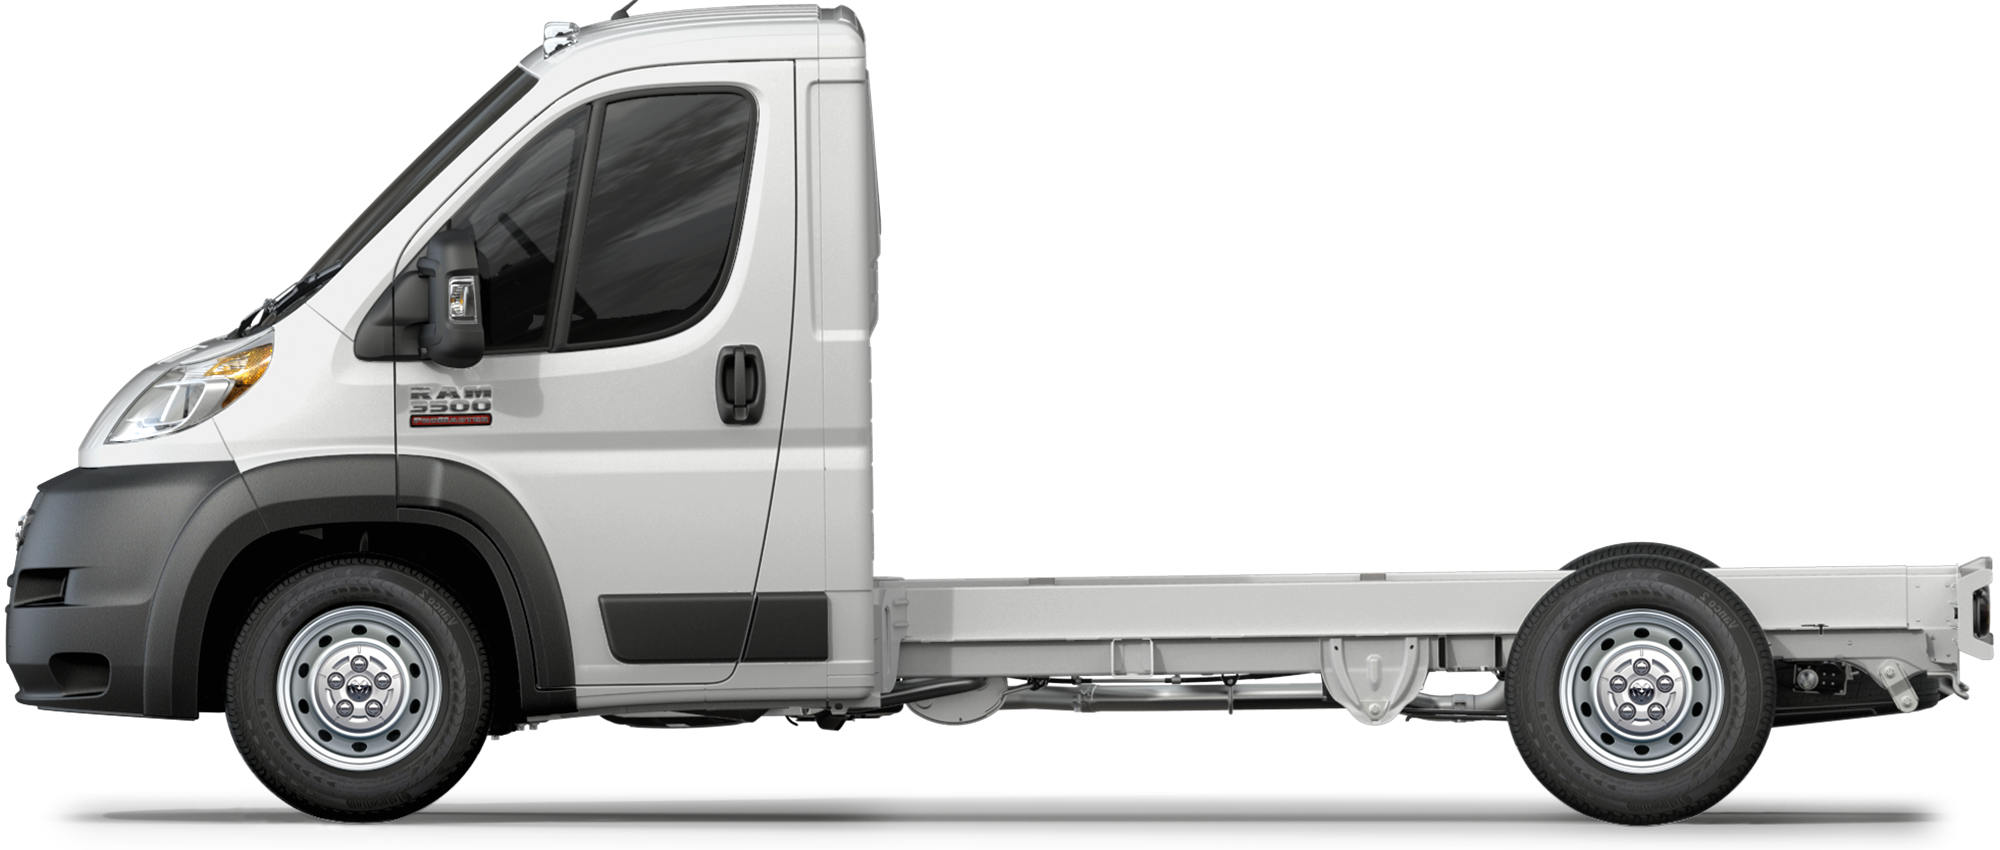 2020 Ram ProMaster 3500 Cutaway Truck Low Roof